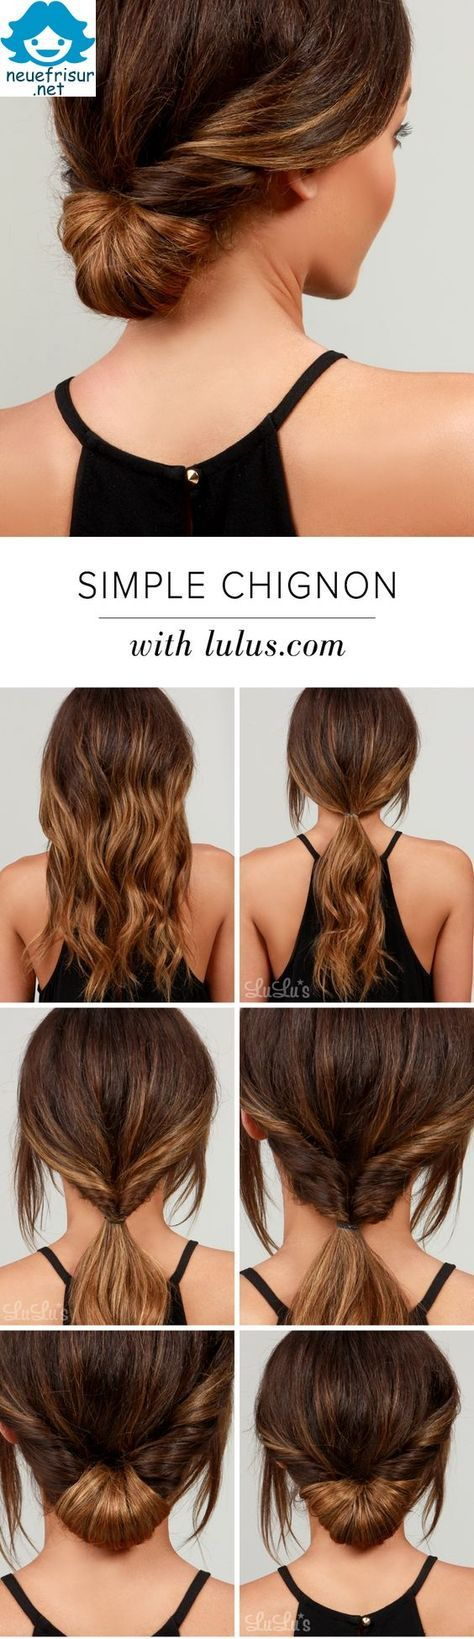 Simple Chignon Hair Tutorial